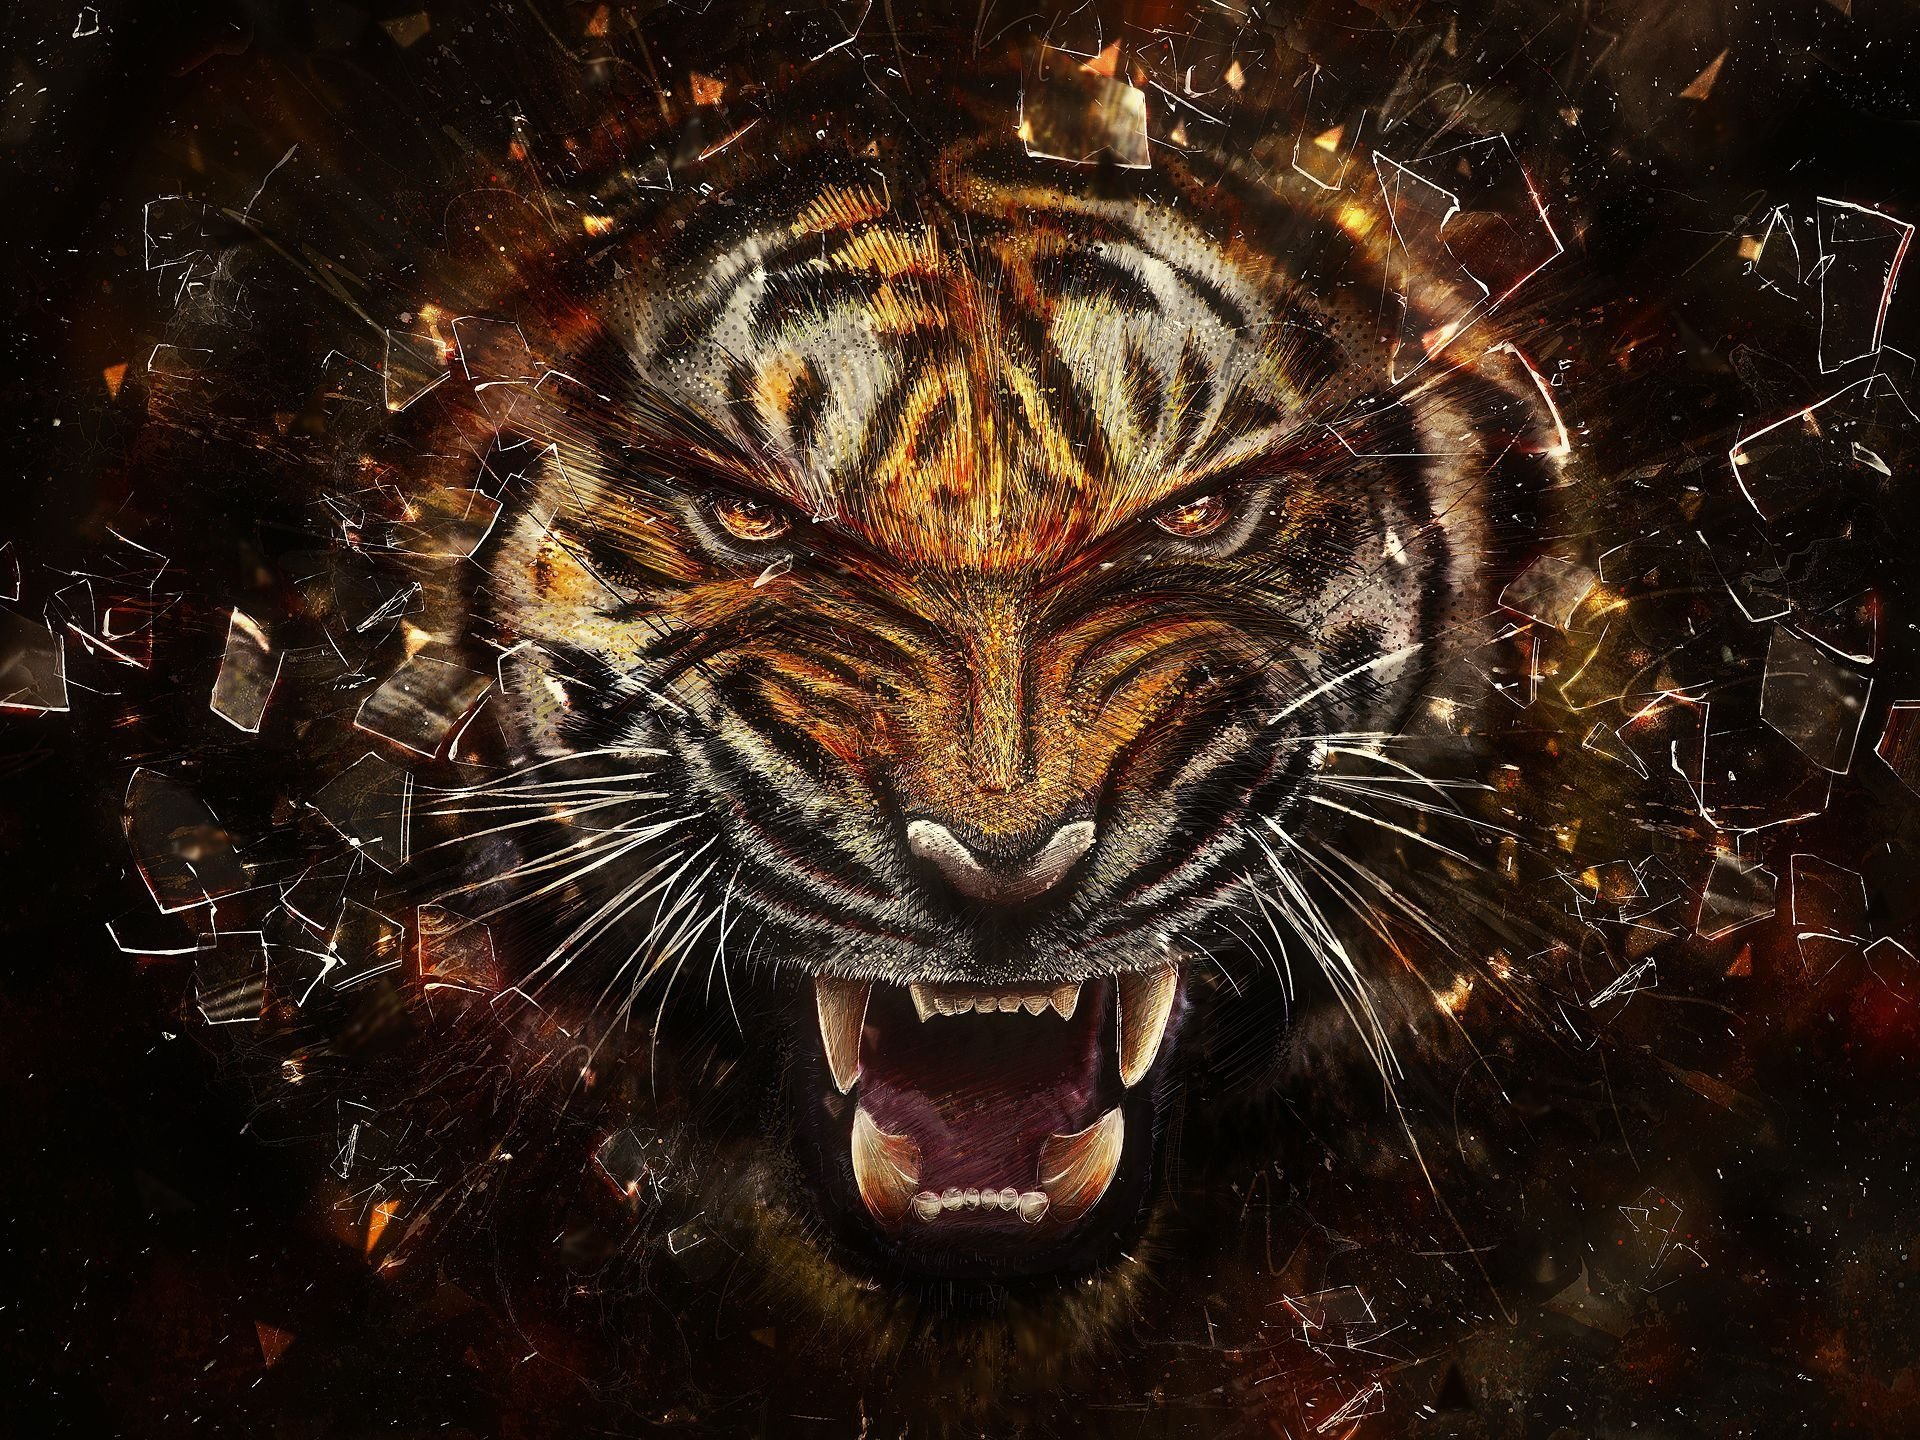 tiger hd wallpaper | background image | 1920x1440 | id:472563